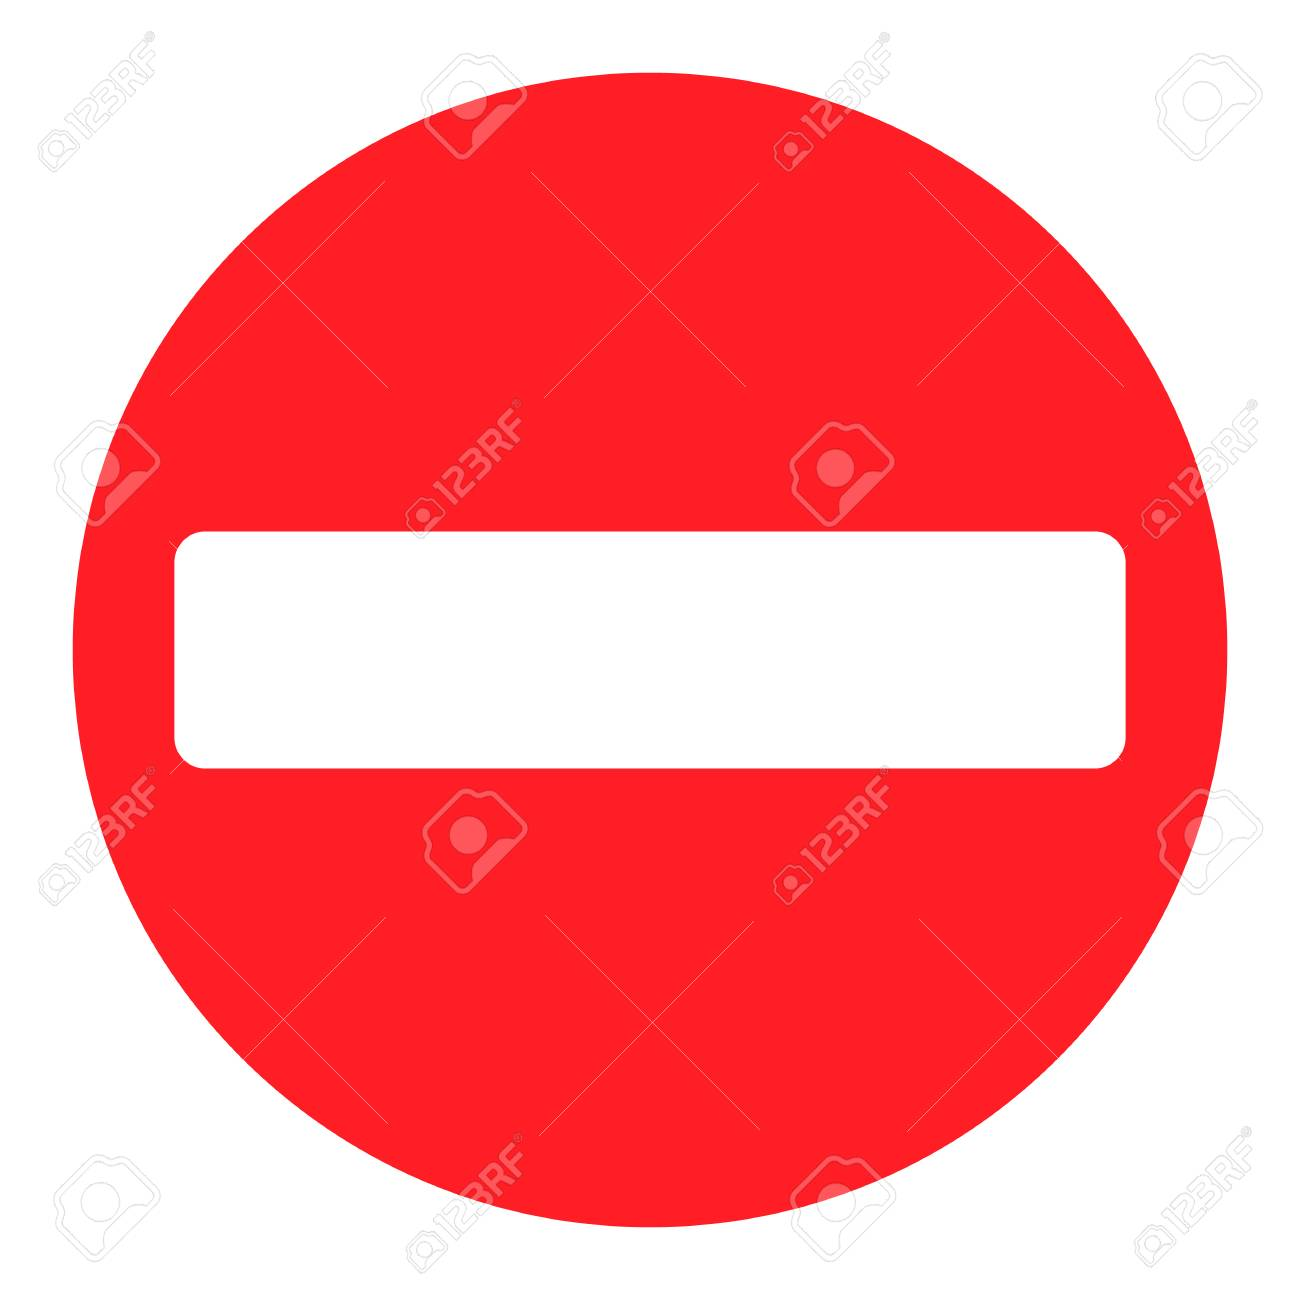 Vector Stop Sign Icon Red Restriction To Enter No Road Allowed Royalty Free Cliparts Vectors And Stock Illustration Image 88694458